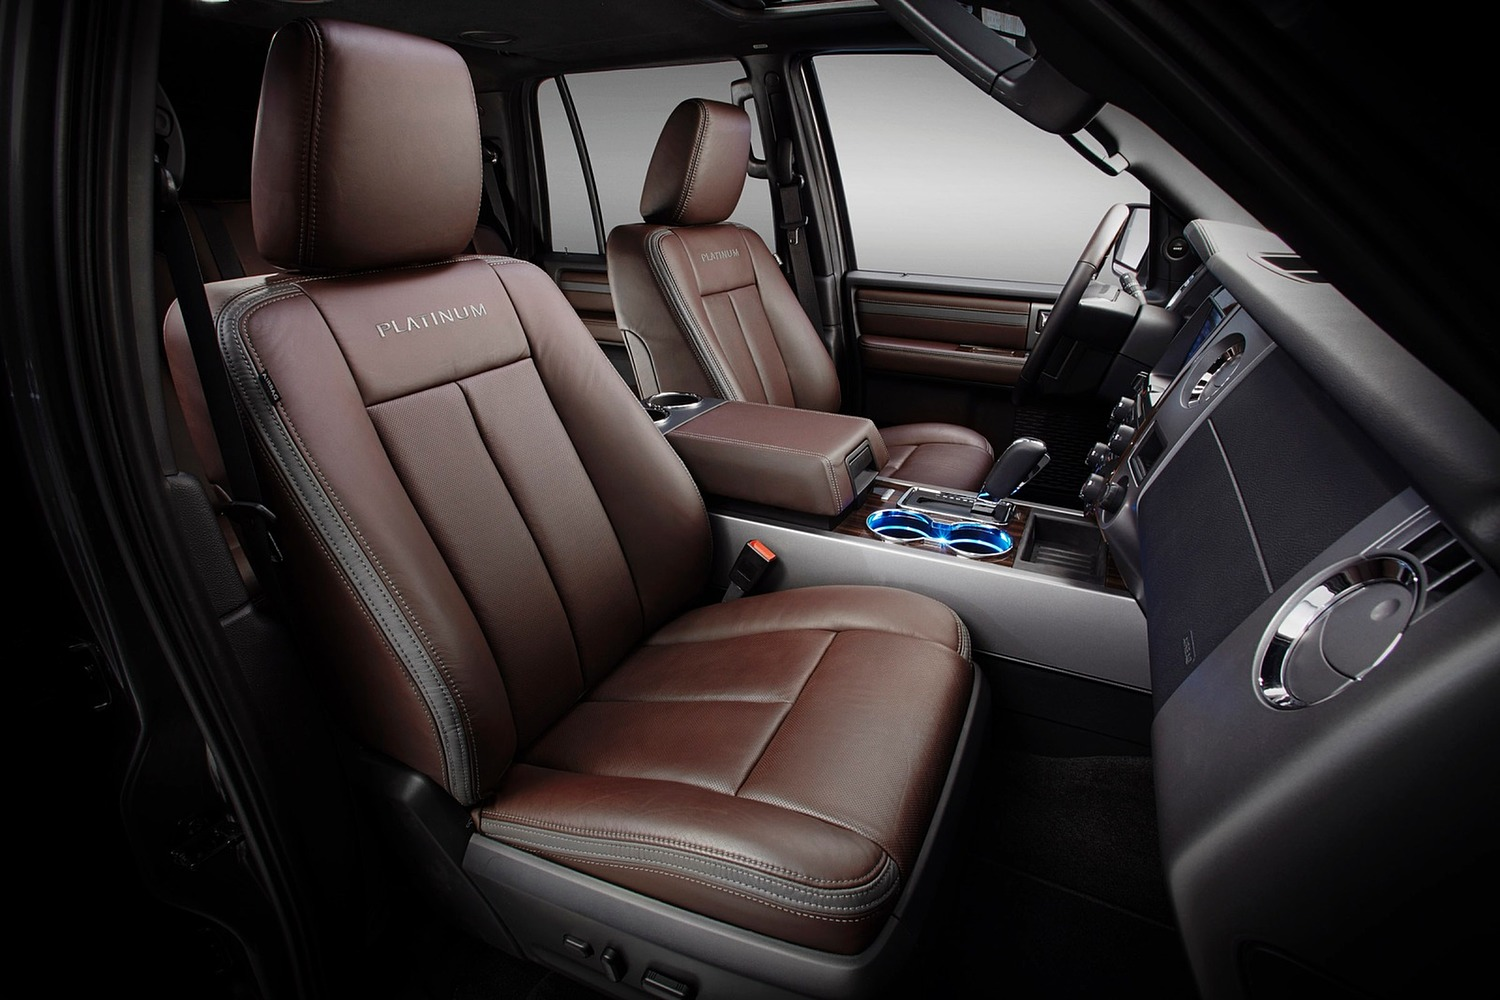 Ford Expedition Platinum 4dr SUV Interior (2015 model year shown)